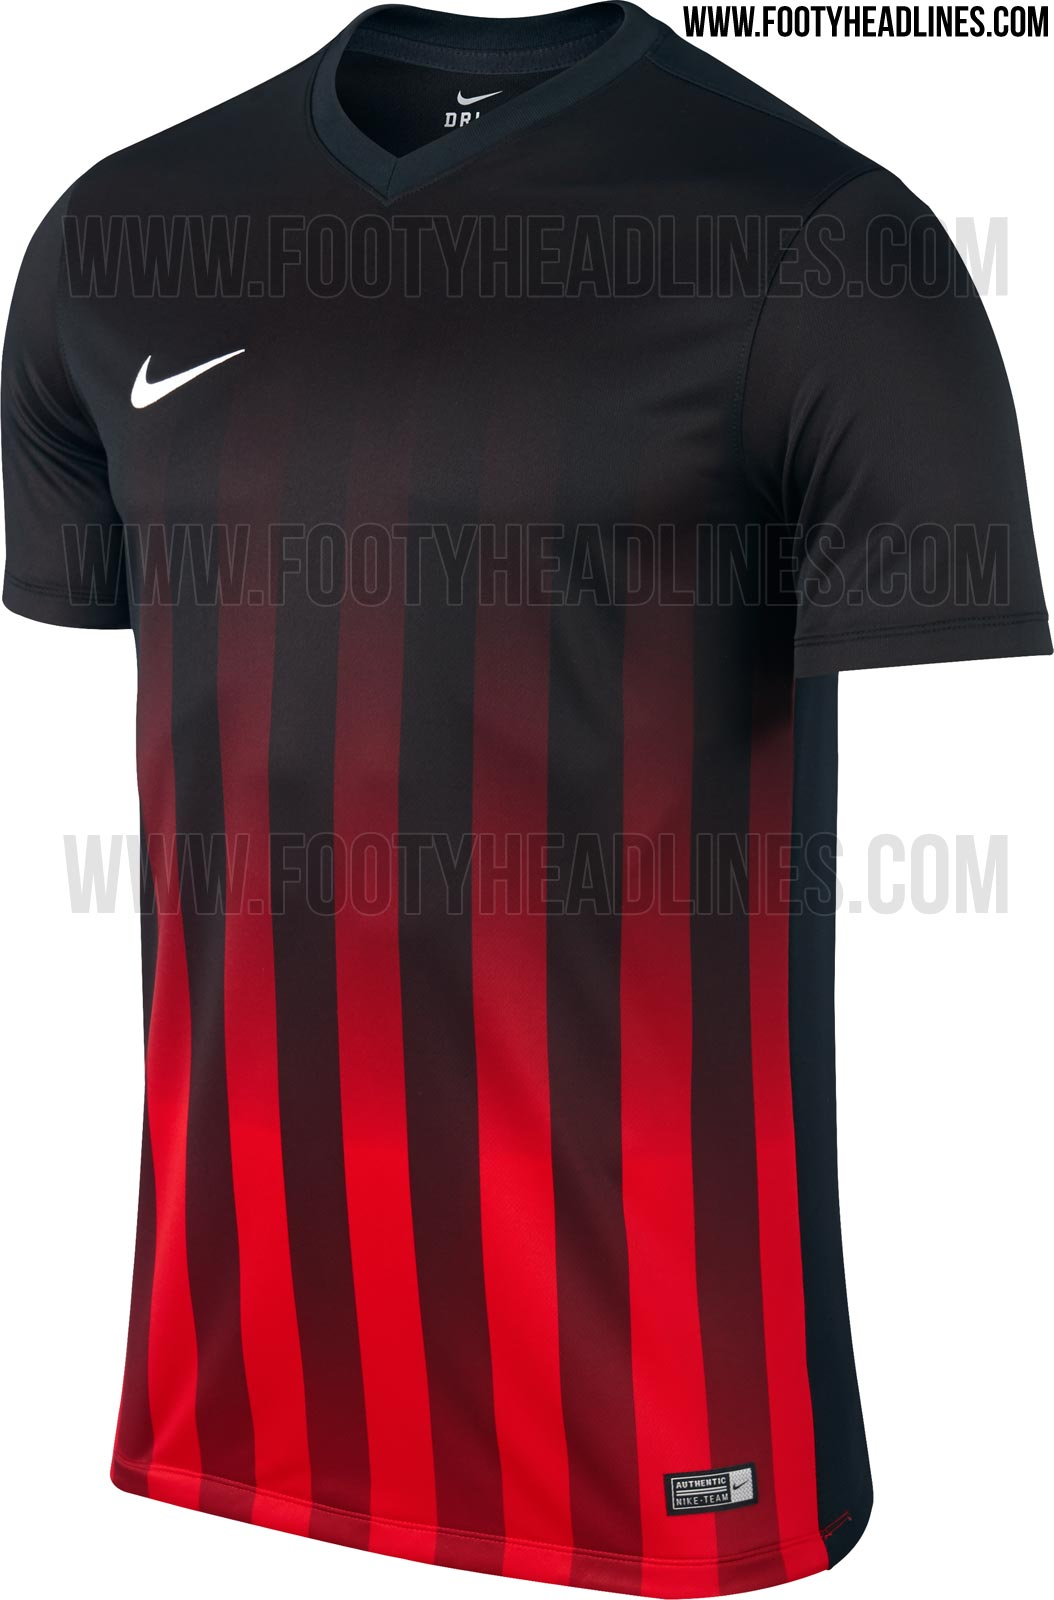 nike-striped-division-ii-jersey-3.jpg